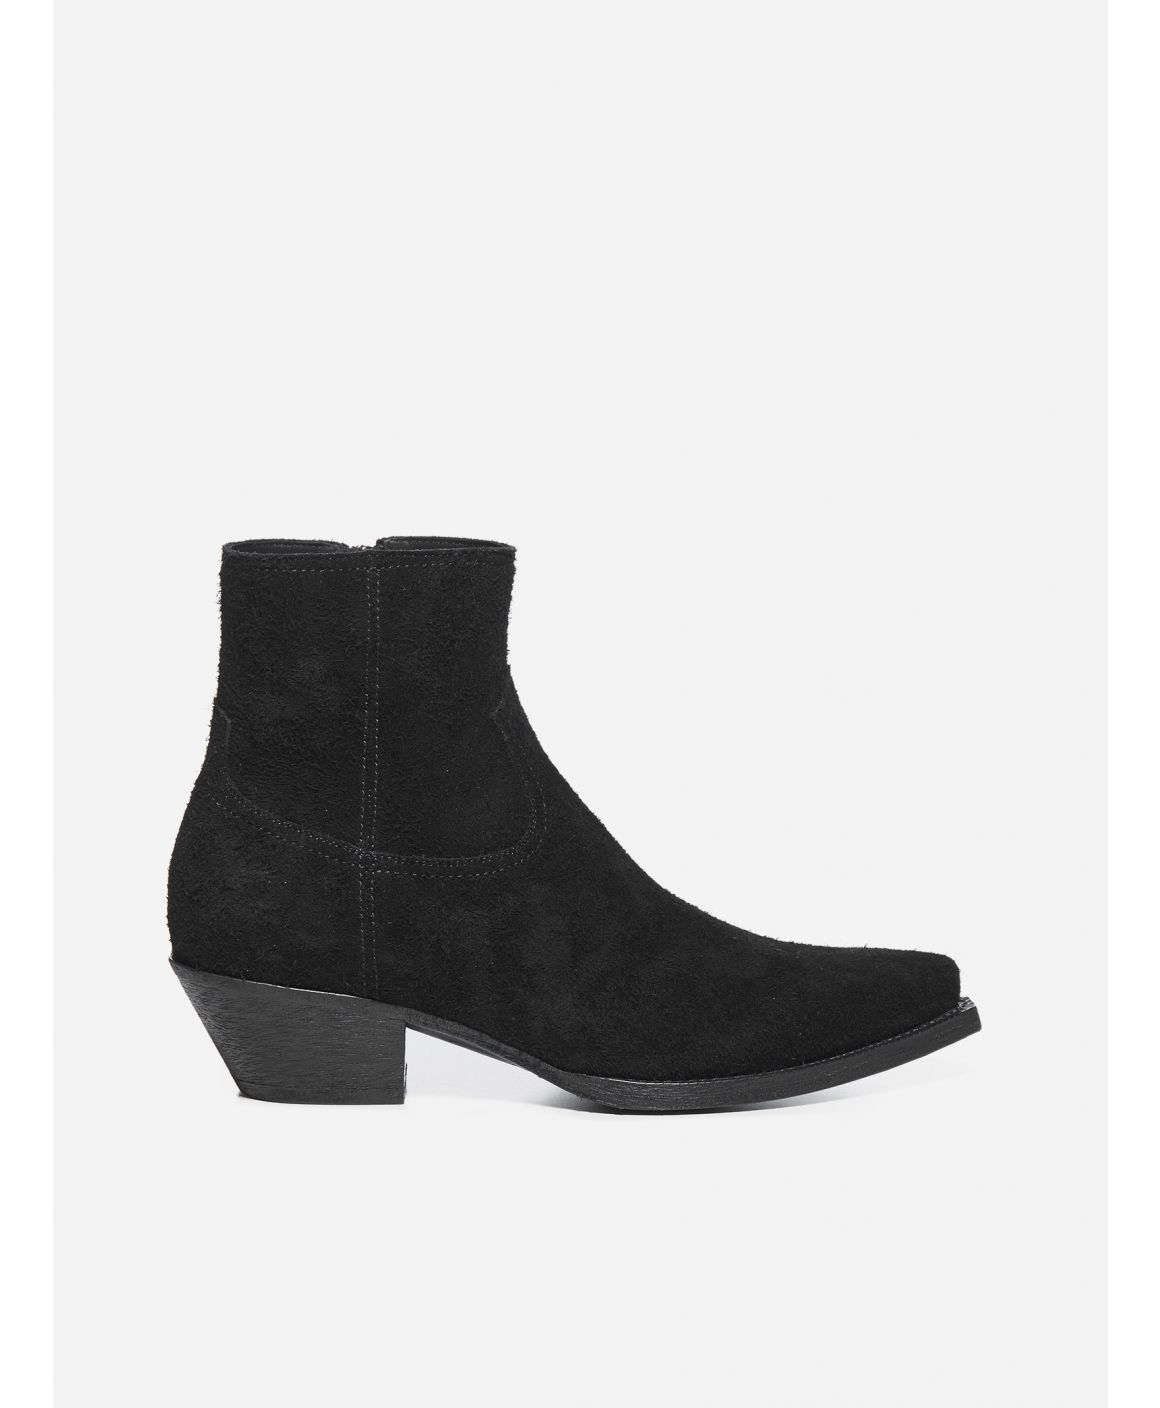 Lukas 40 suede ankle boots